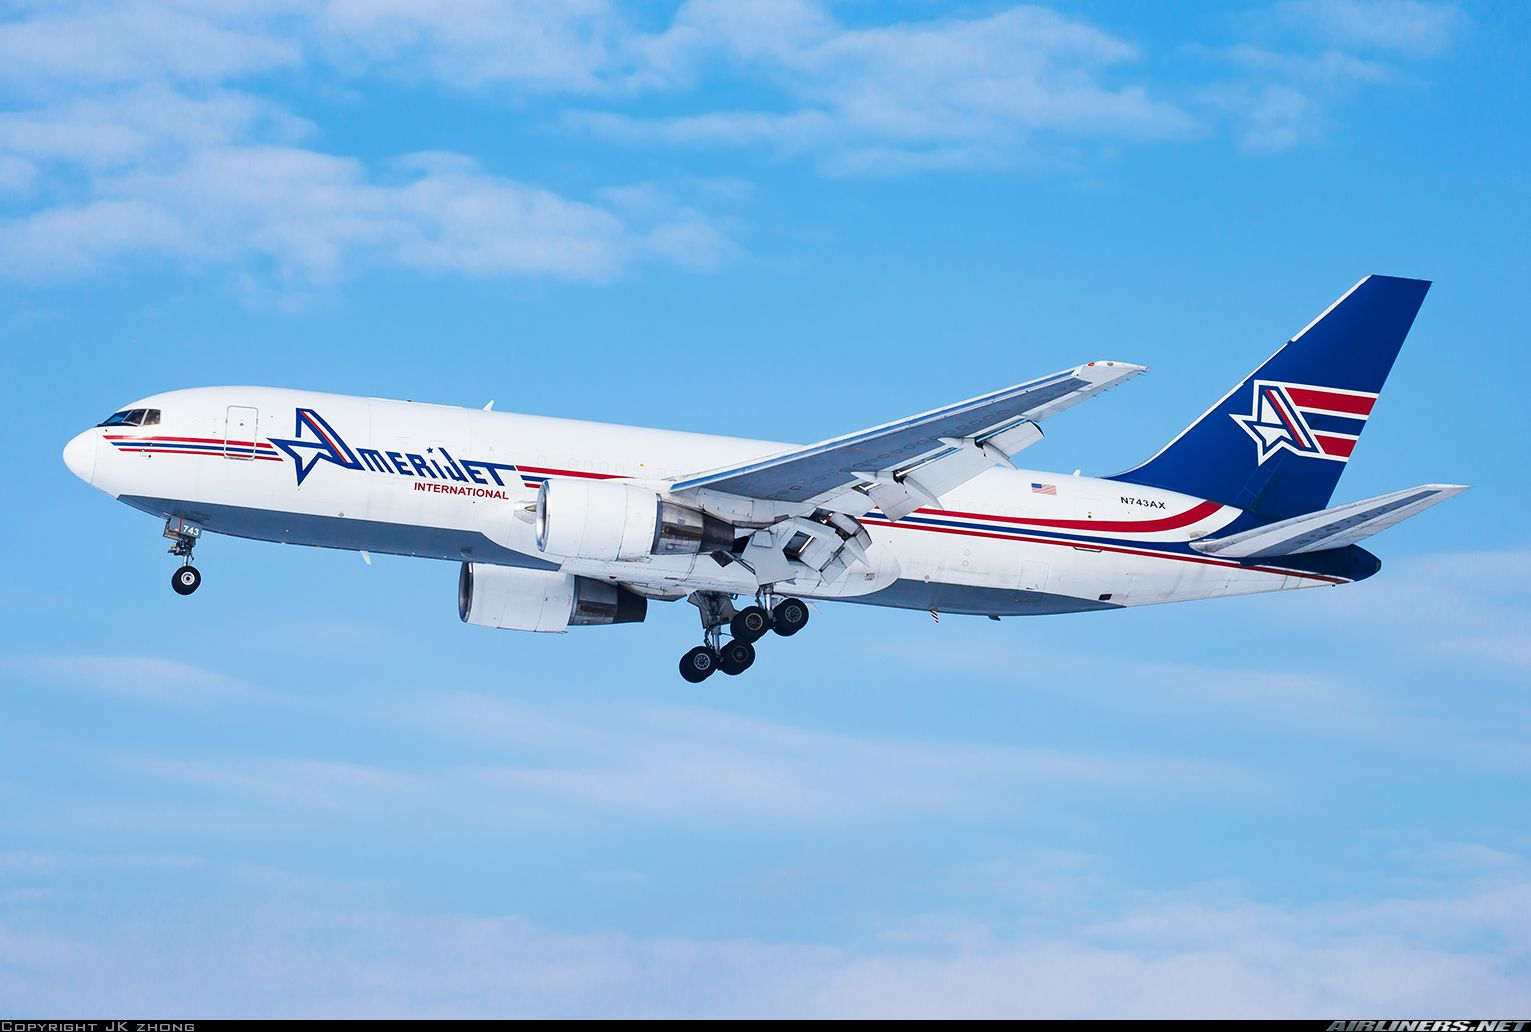 Pin by Paul Glick on Cargo Airlines in 2020 (With images